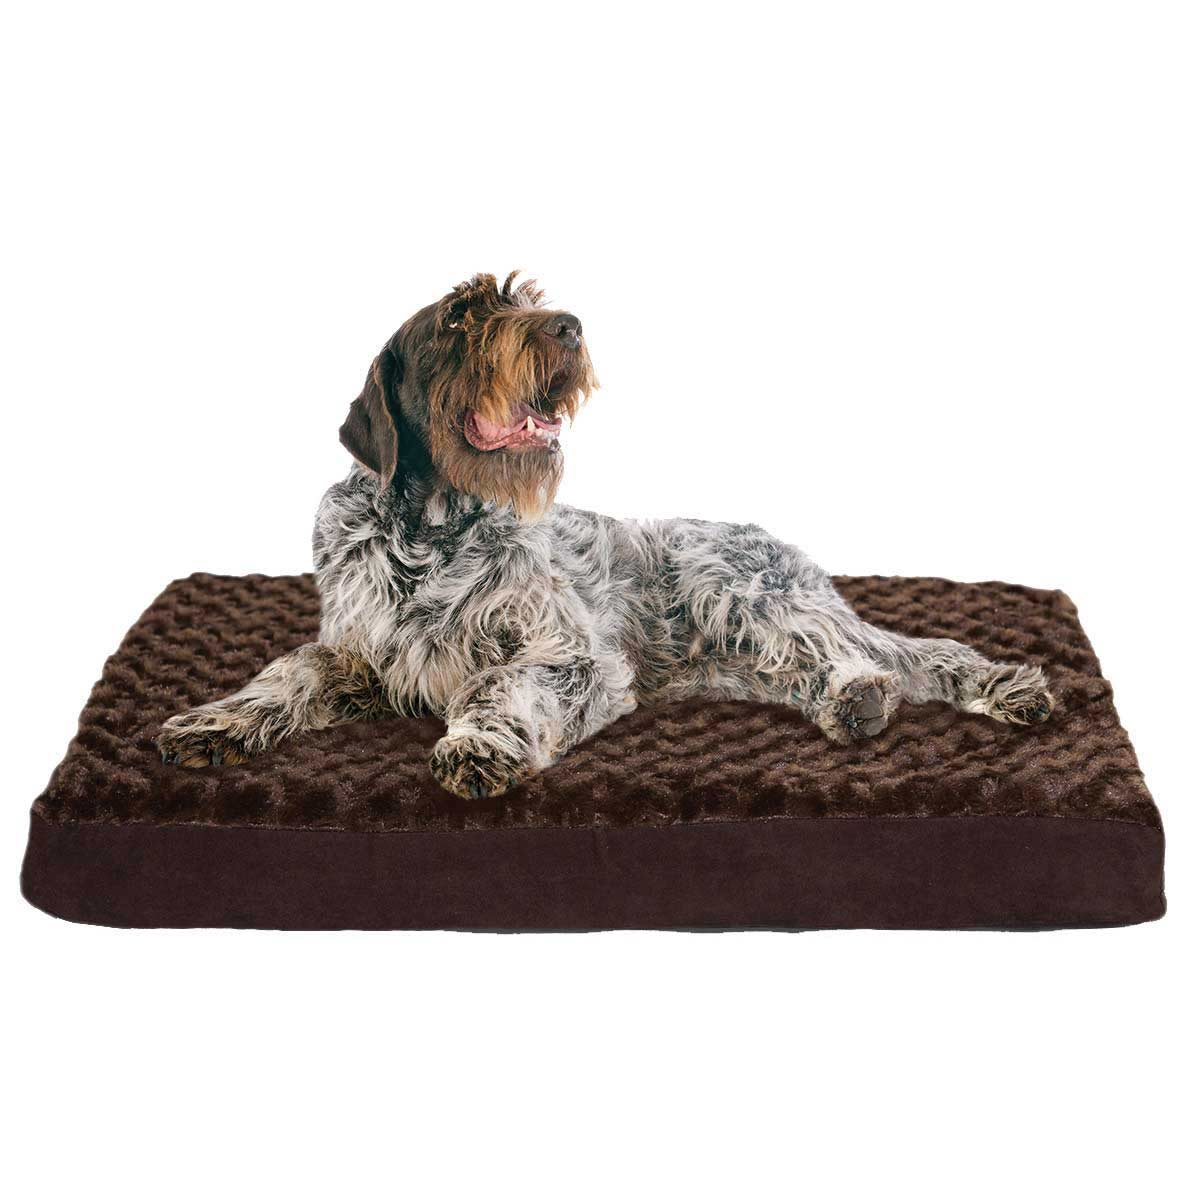 Chocolate Brown Furhaven Nap Ultra Plush Deluxe With Memory Foam Orthopedic Mats for Dogs